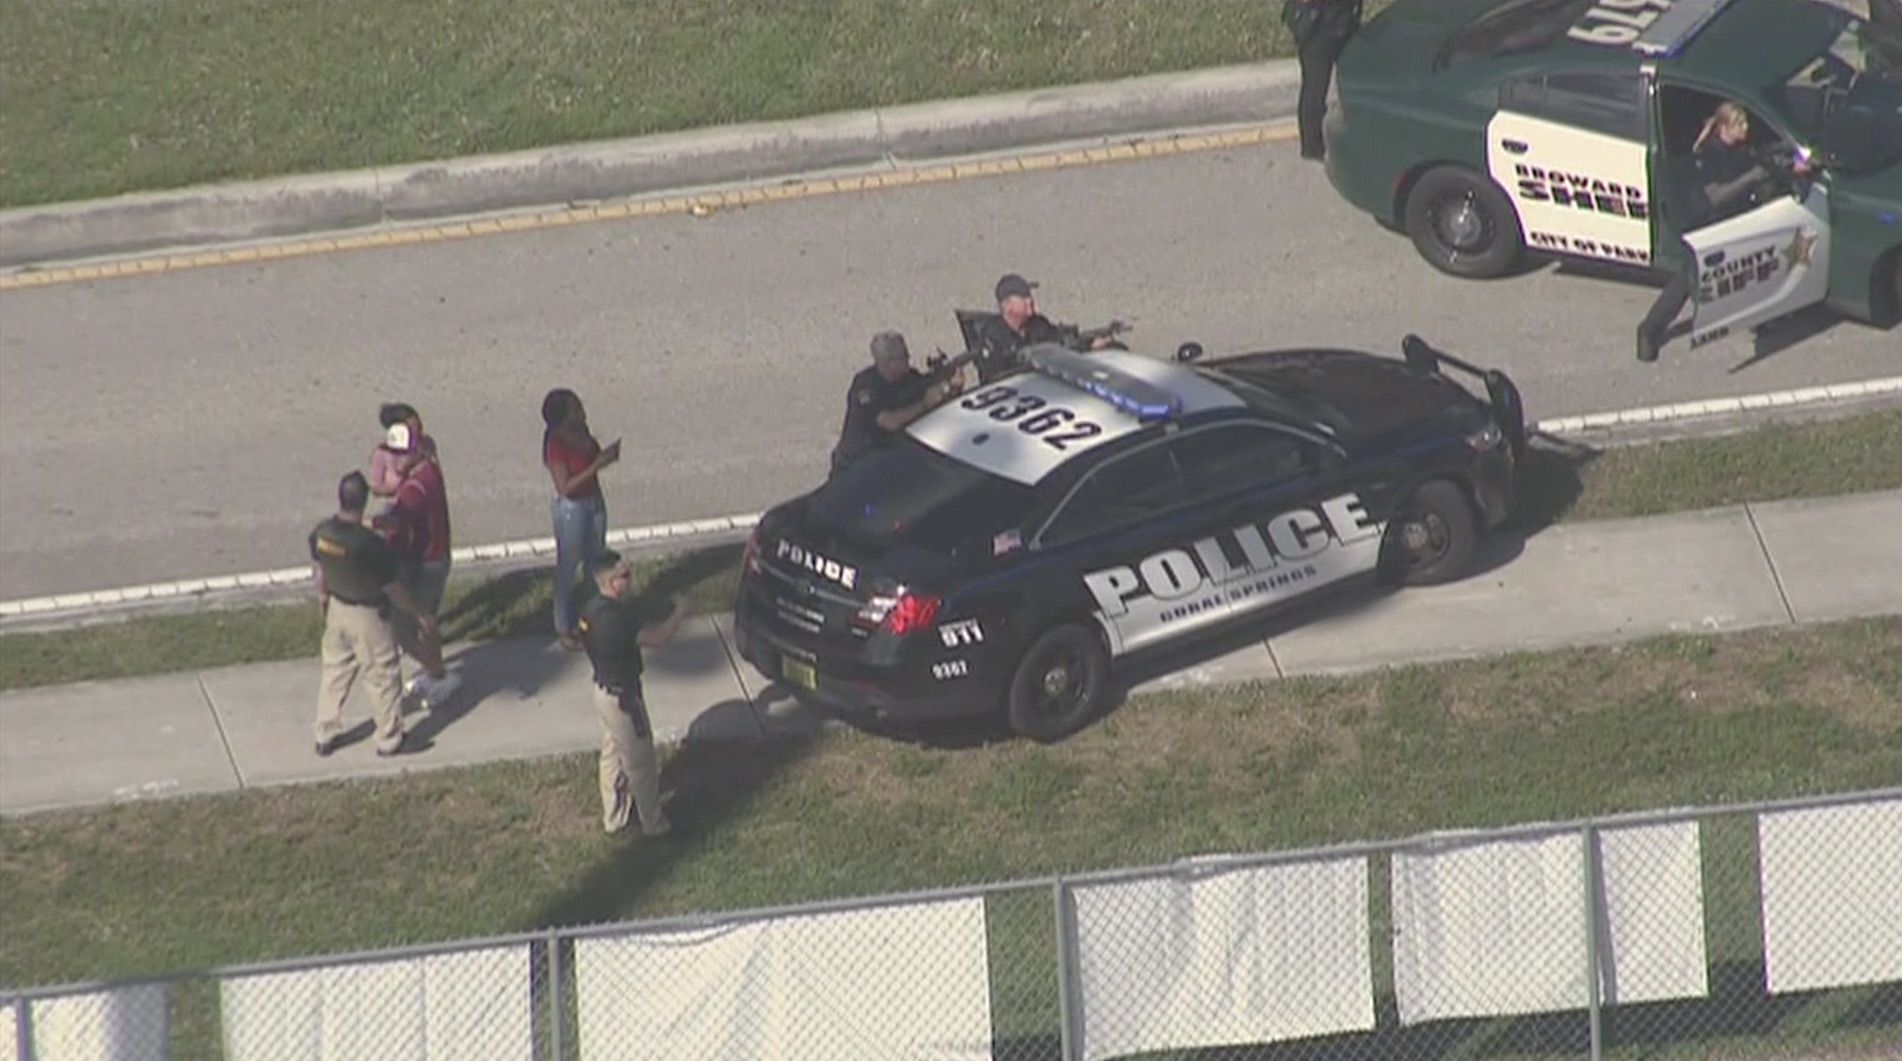 "<div class=""meta image-caption""><div class=""origin-logo origin-image wls""><span>wls</span></div><span class=""caption-text"">Authorities are responding to reports of shots fired at a Florida high school. (WSVN via CNN)</span></div>"